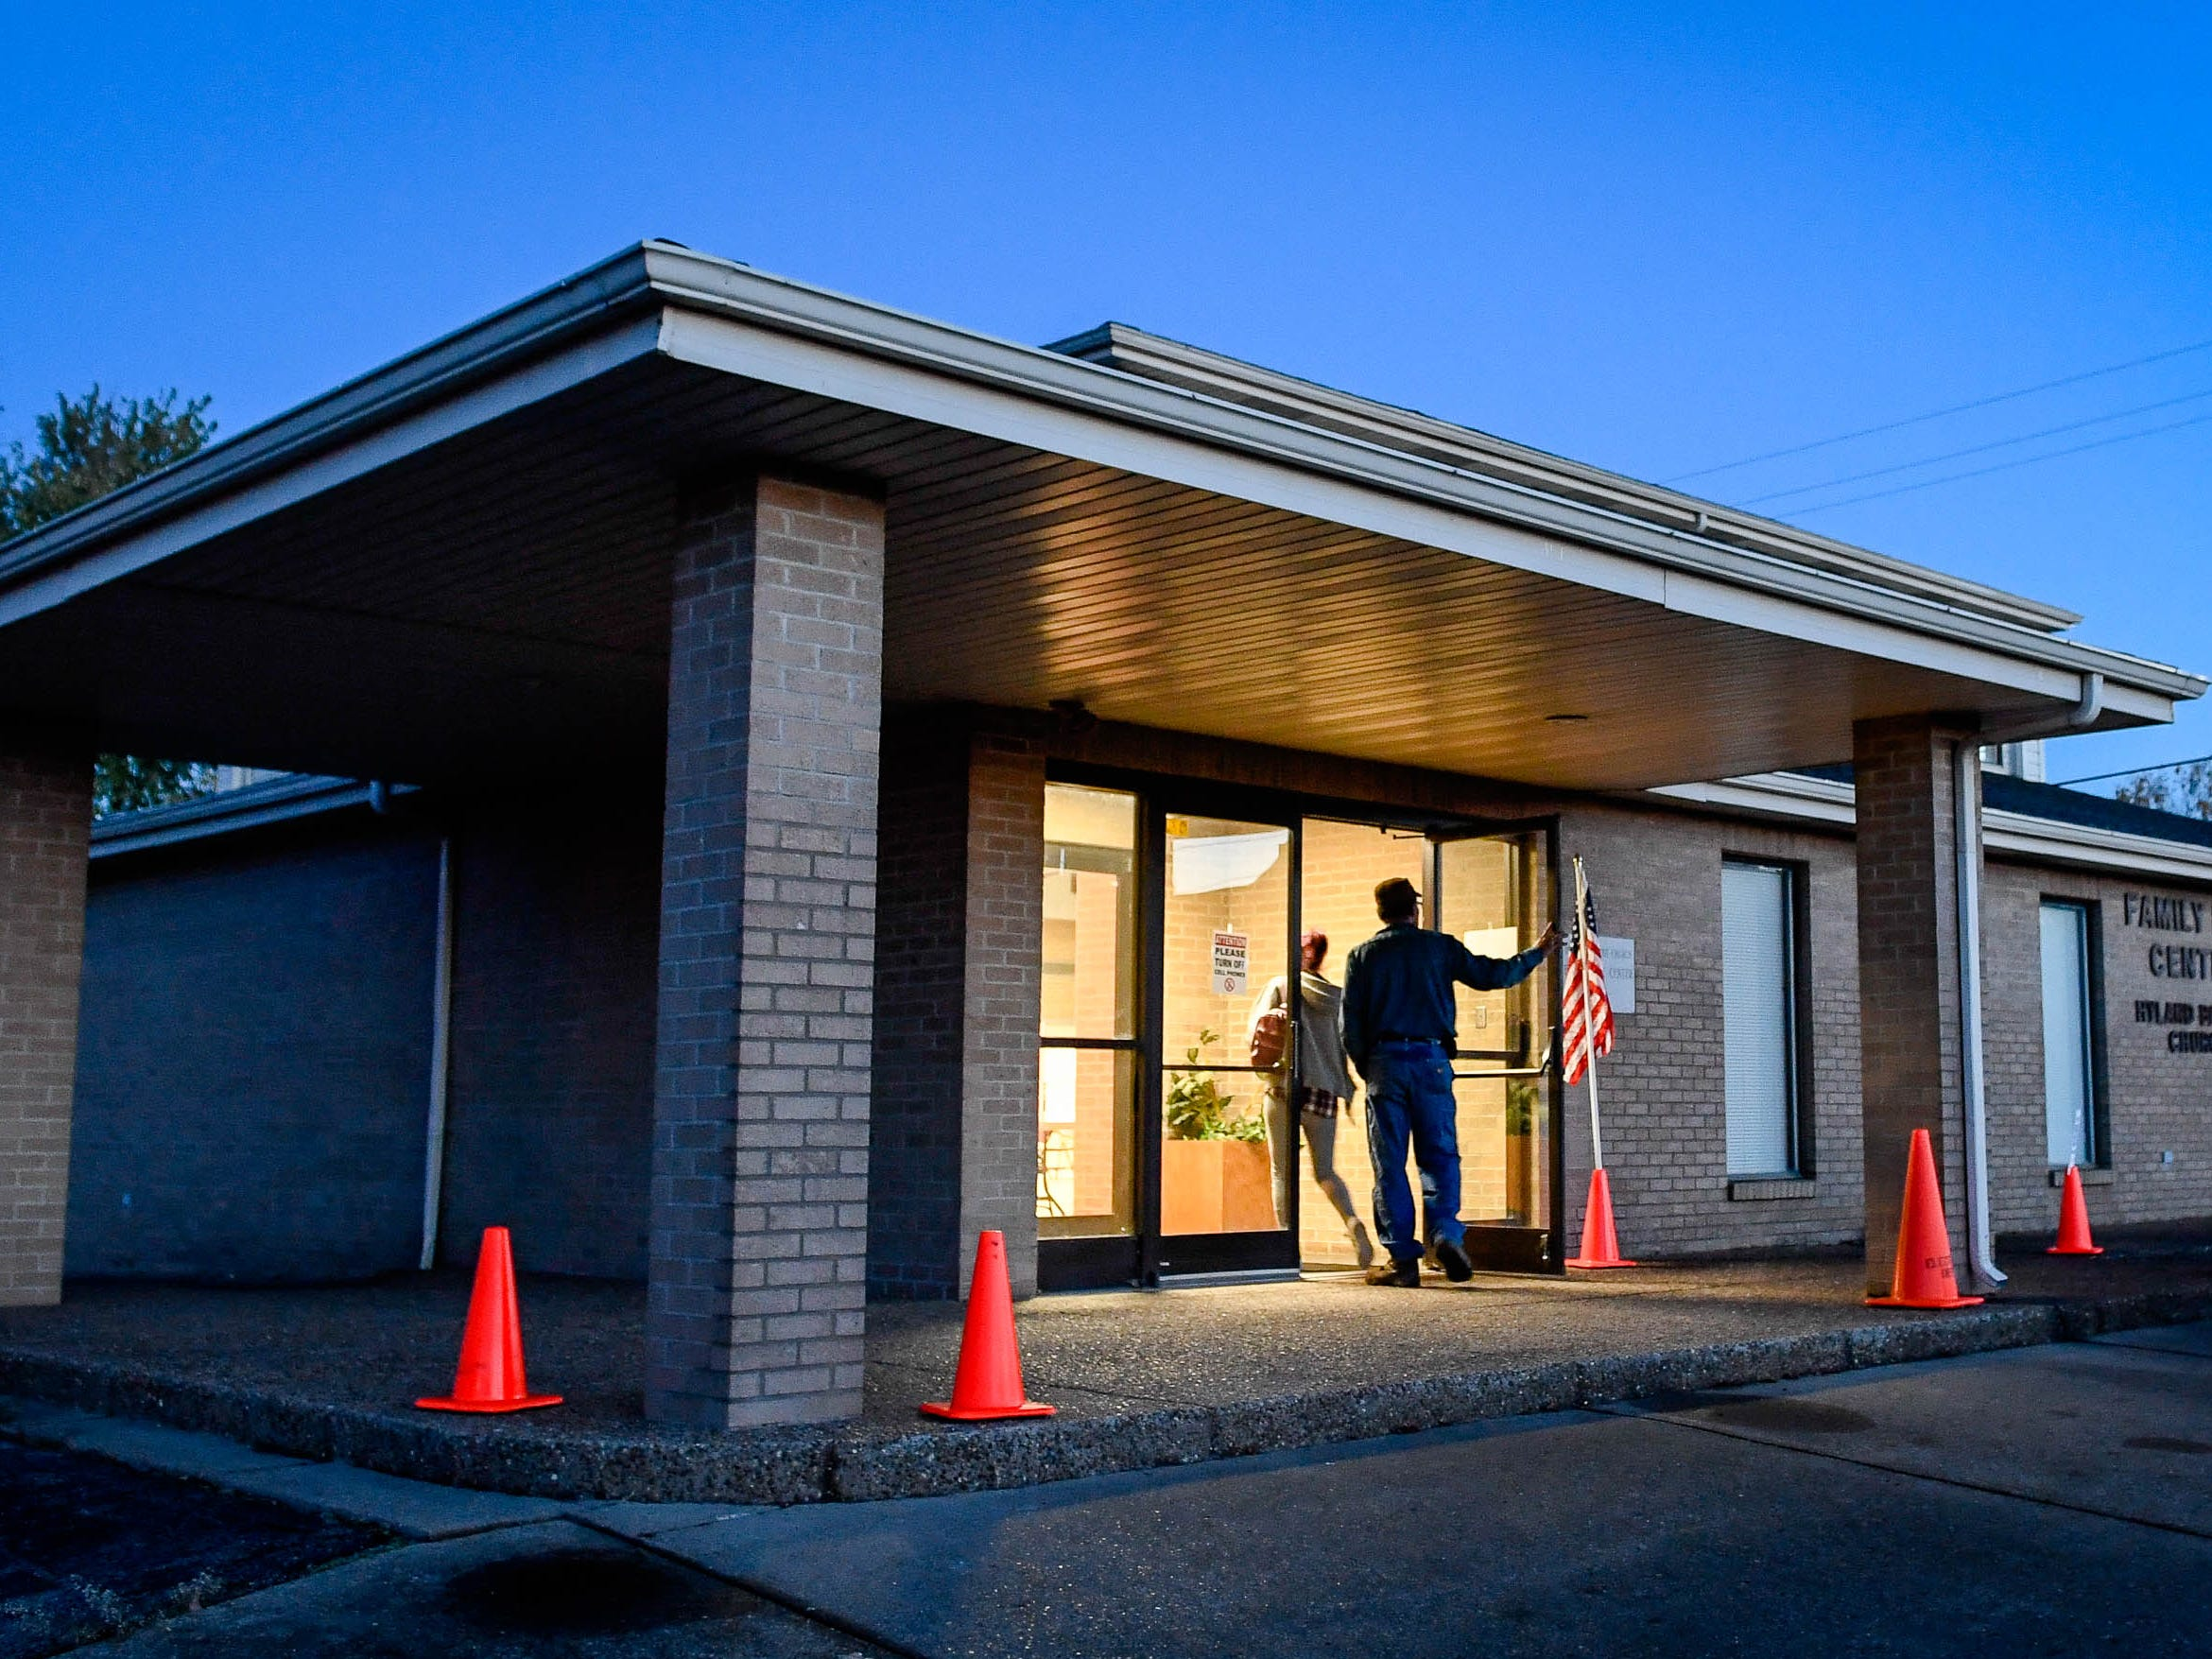 Voters arrive in the pre-dawn to cast their ballot at the Audubon Heights precinct on Letcher Street in Henderson Tuesday morning, November 6, 2018.